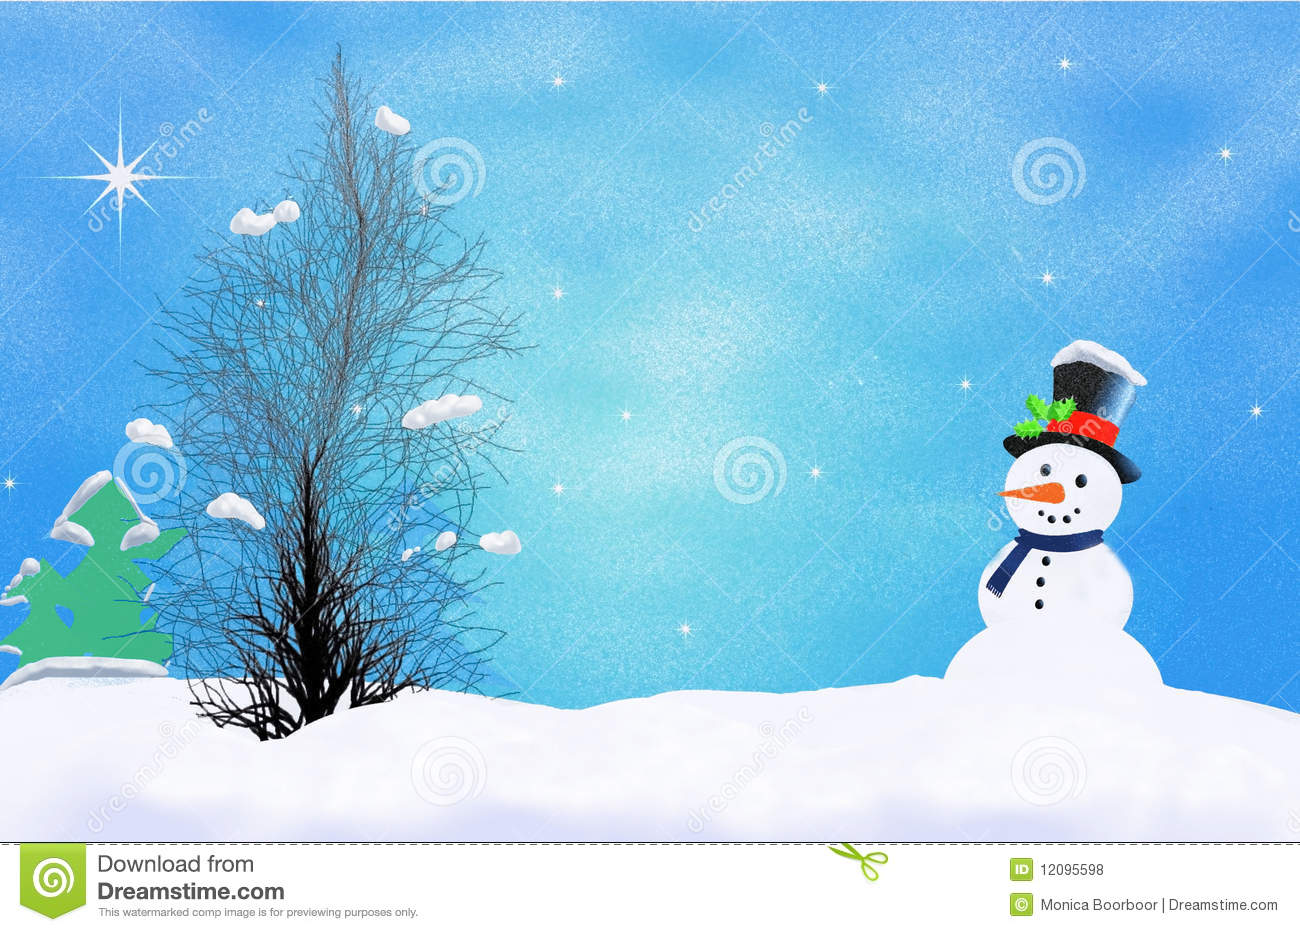 Tree With Leaves Falling Wallpaper The Rest Of The Snow Clipart Clipground